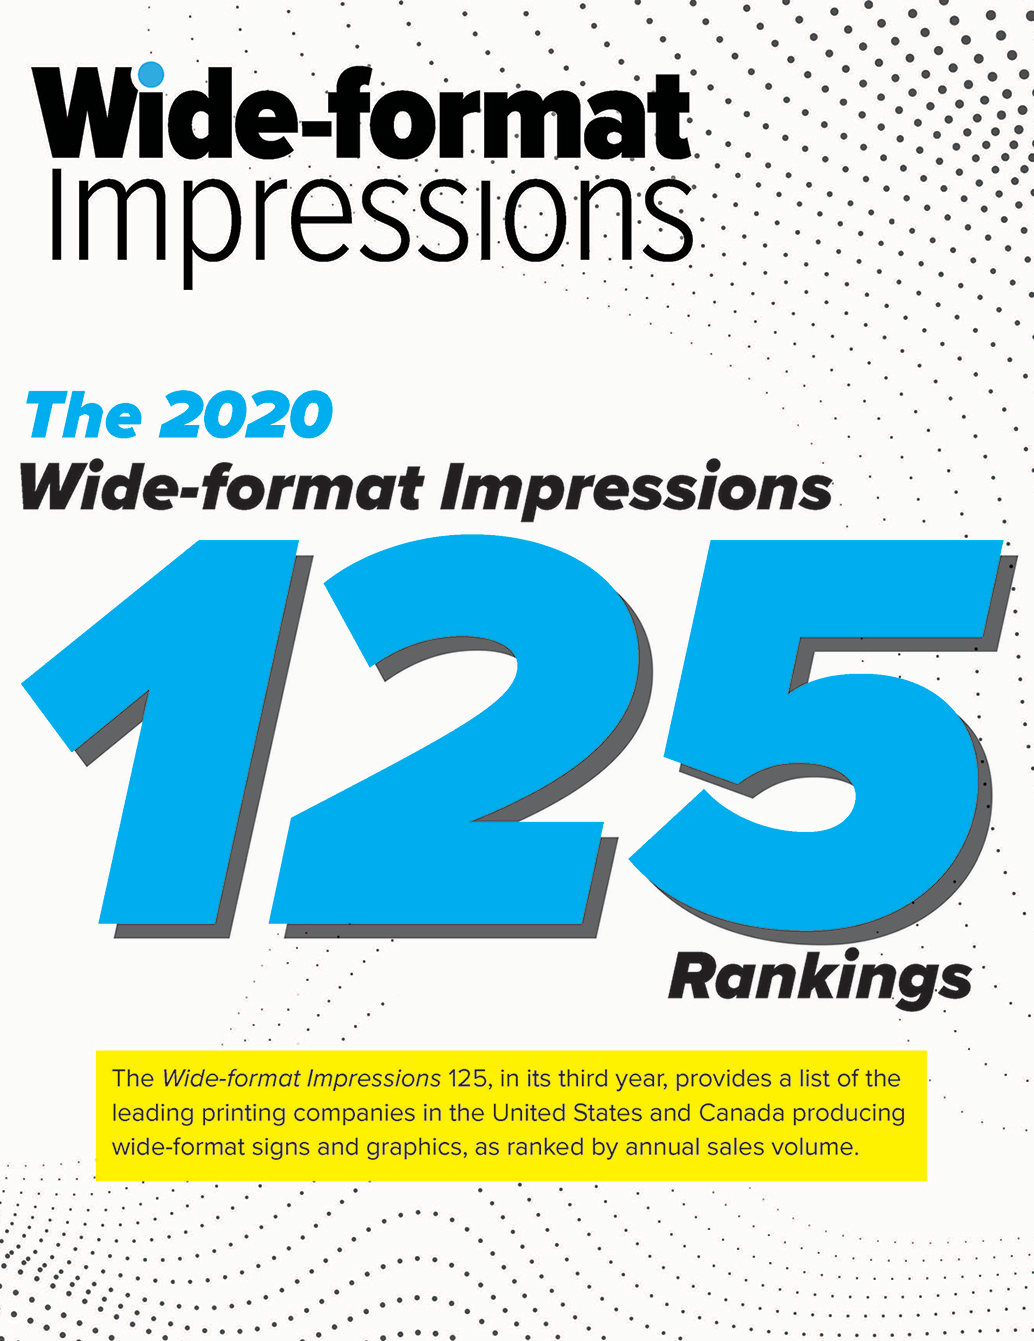 largest wide format printers in 2020